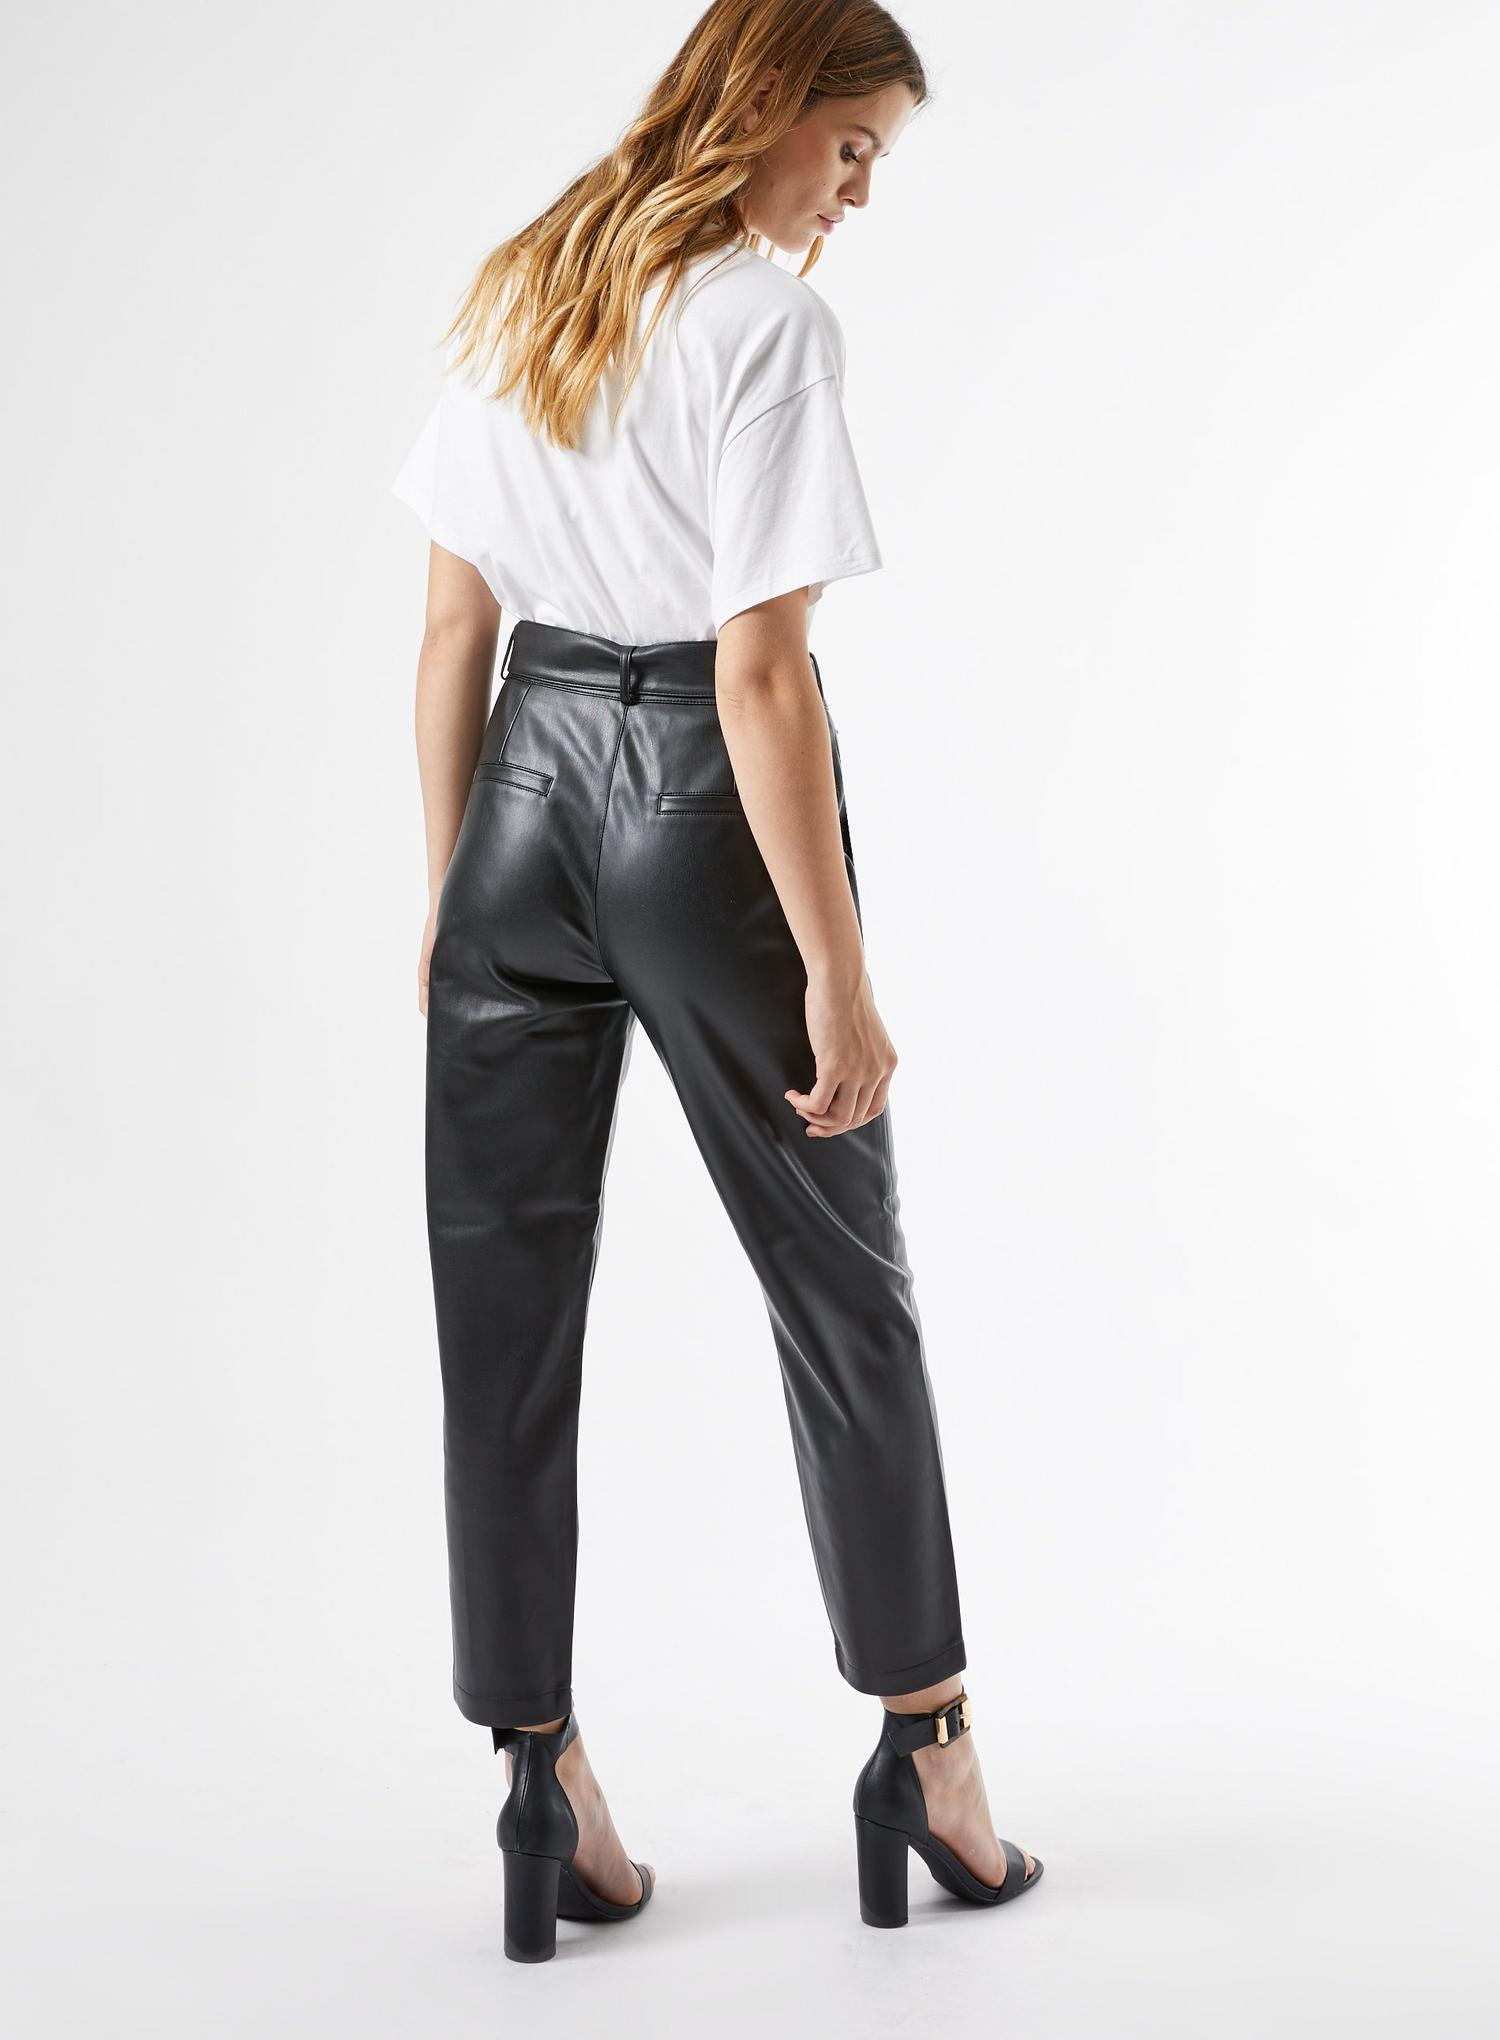 105 Black Faux Leather Belted Trousers image number 3